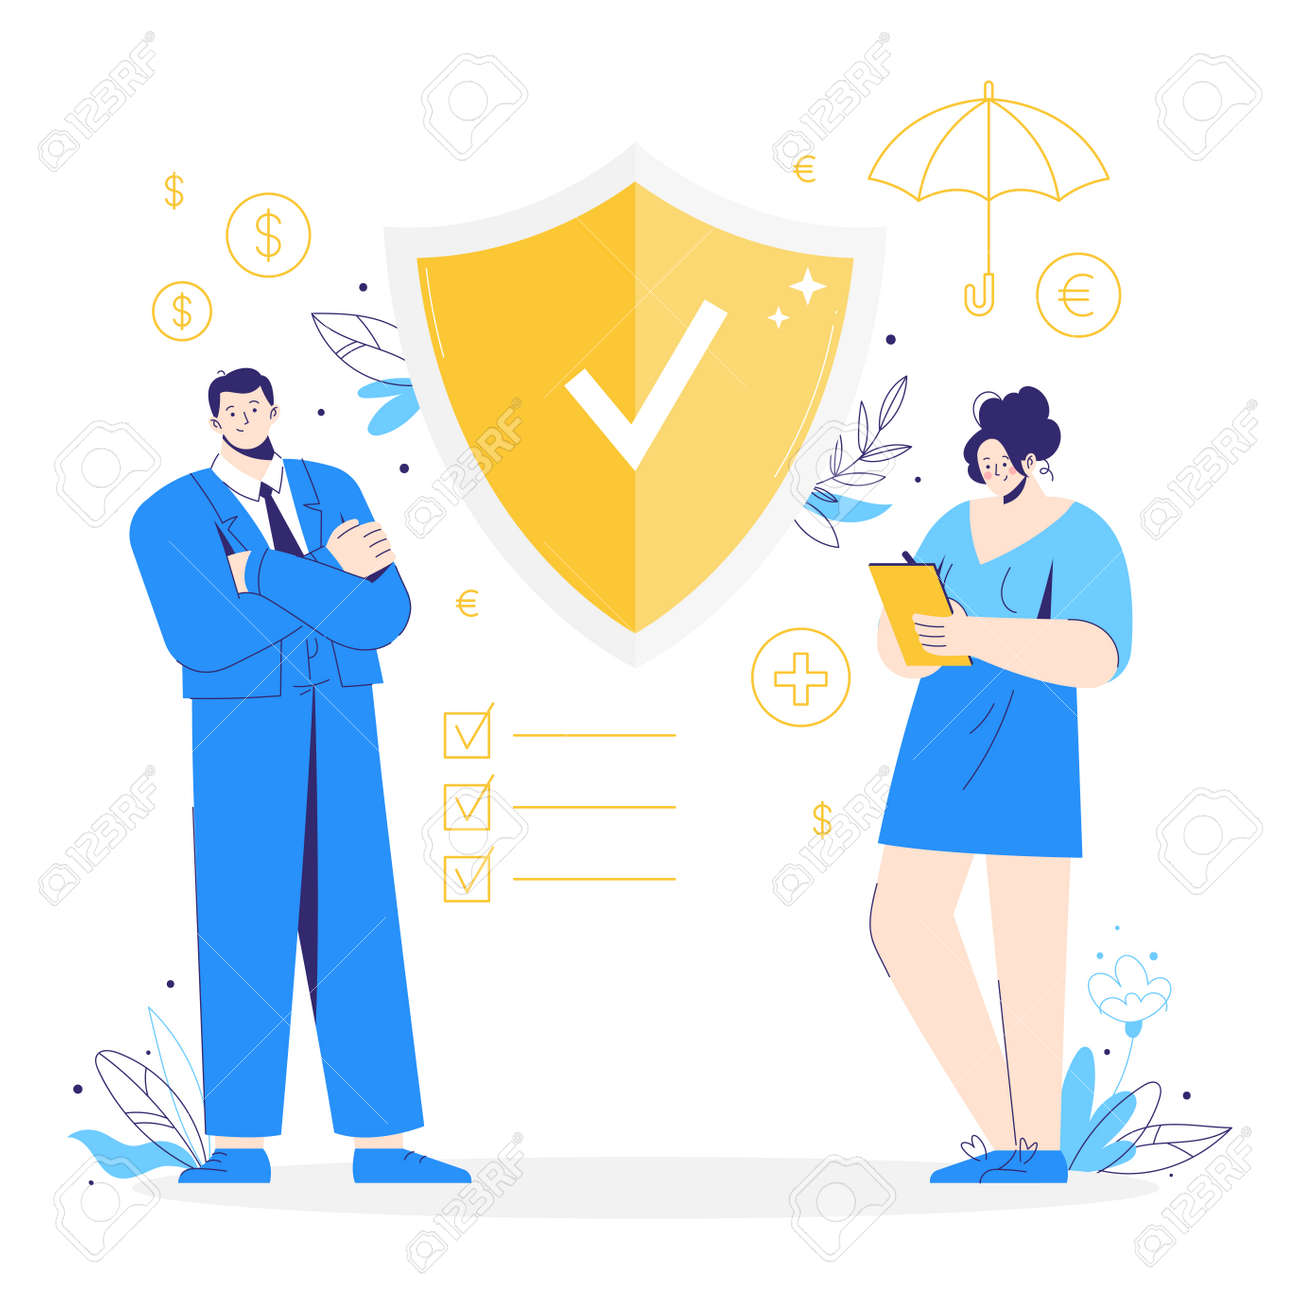 Man and woman stand near a shield to protect against attacks. Protection, insurance, health, business risk concept. Money, umbrella and checklist icons. - 171651048